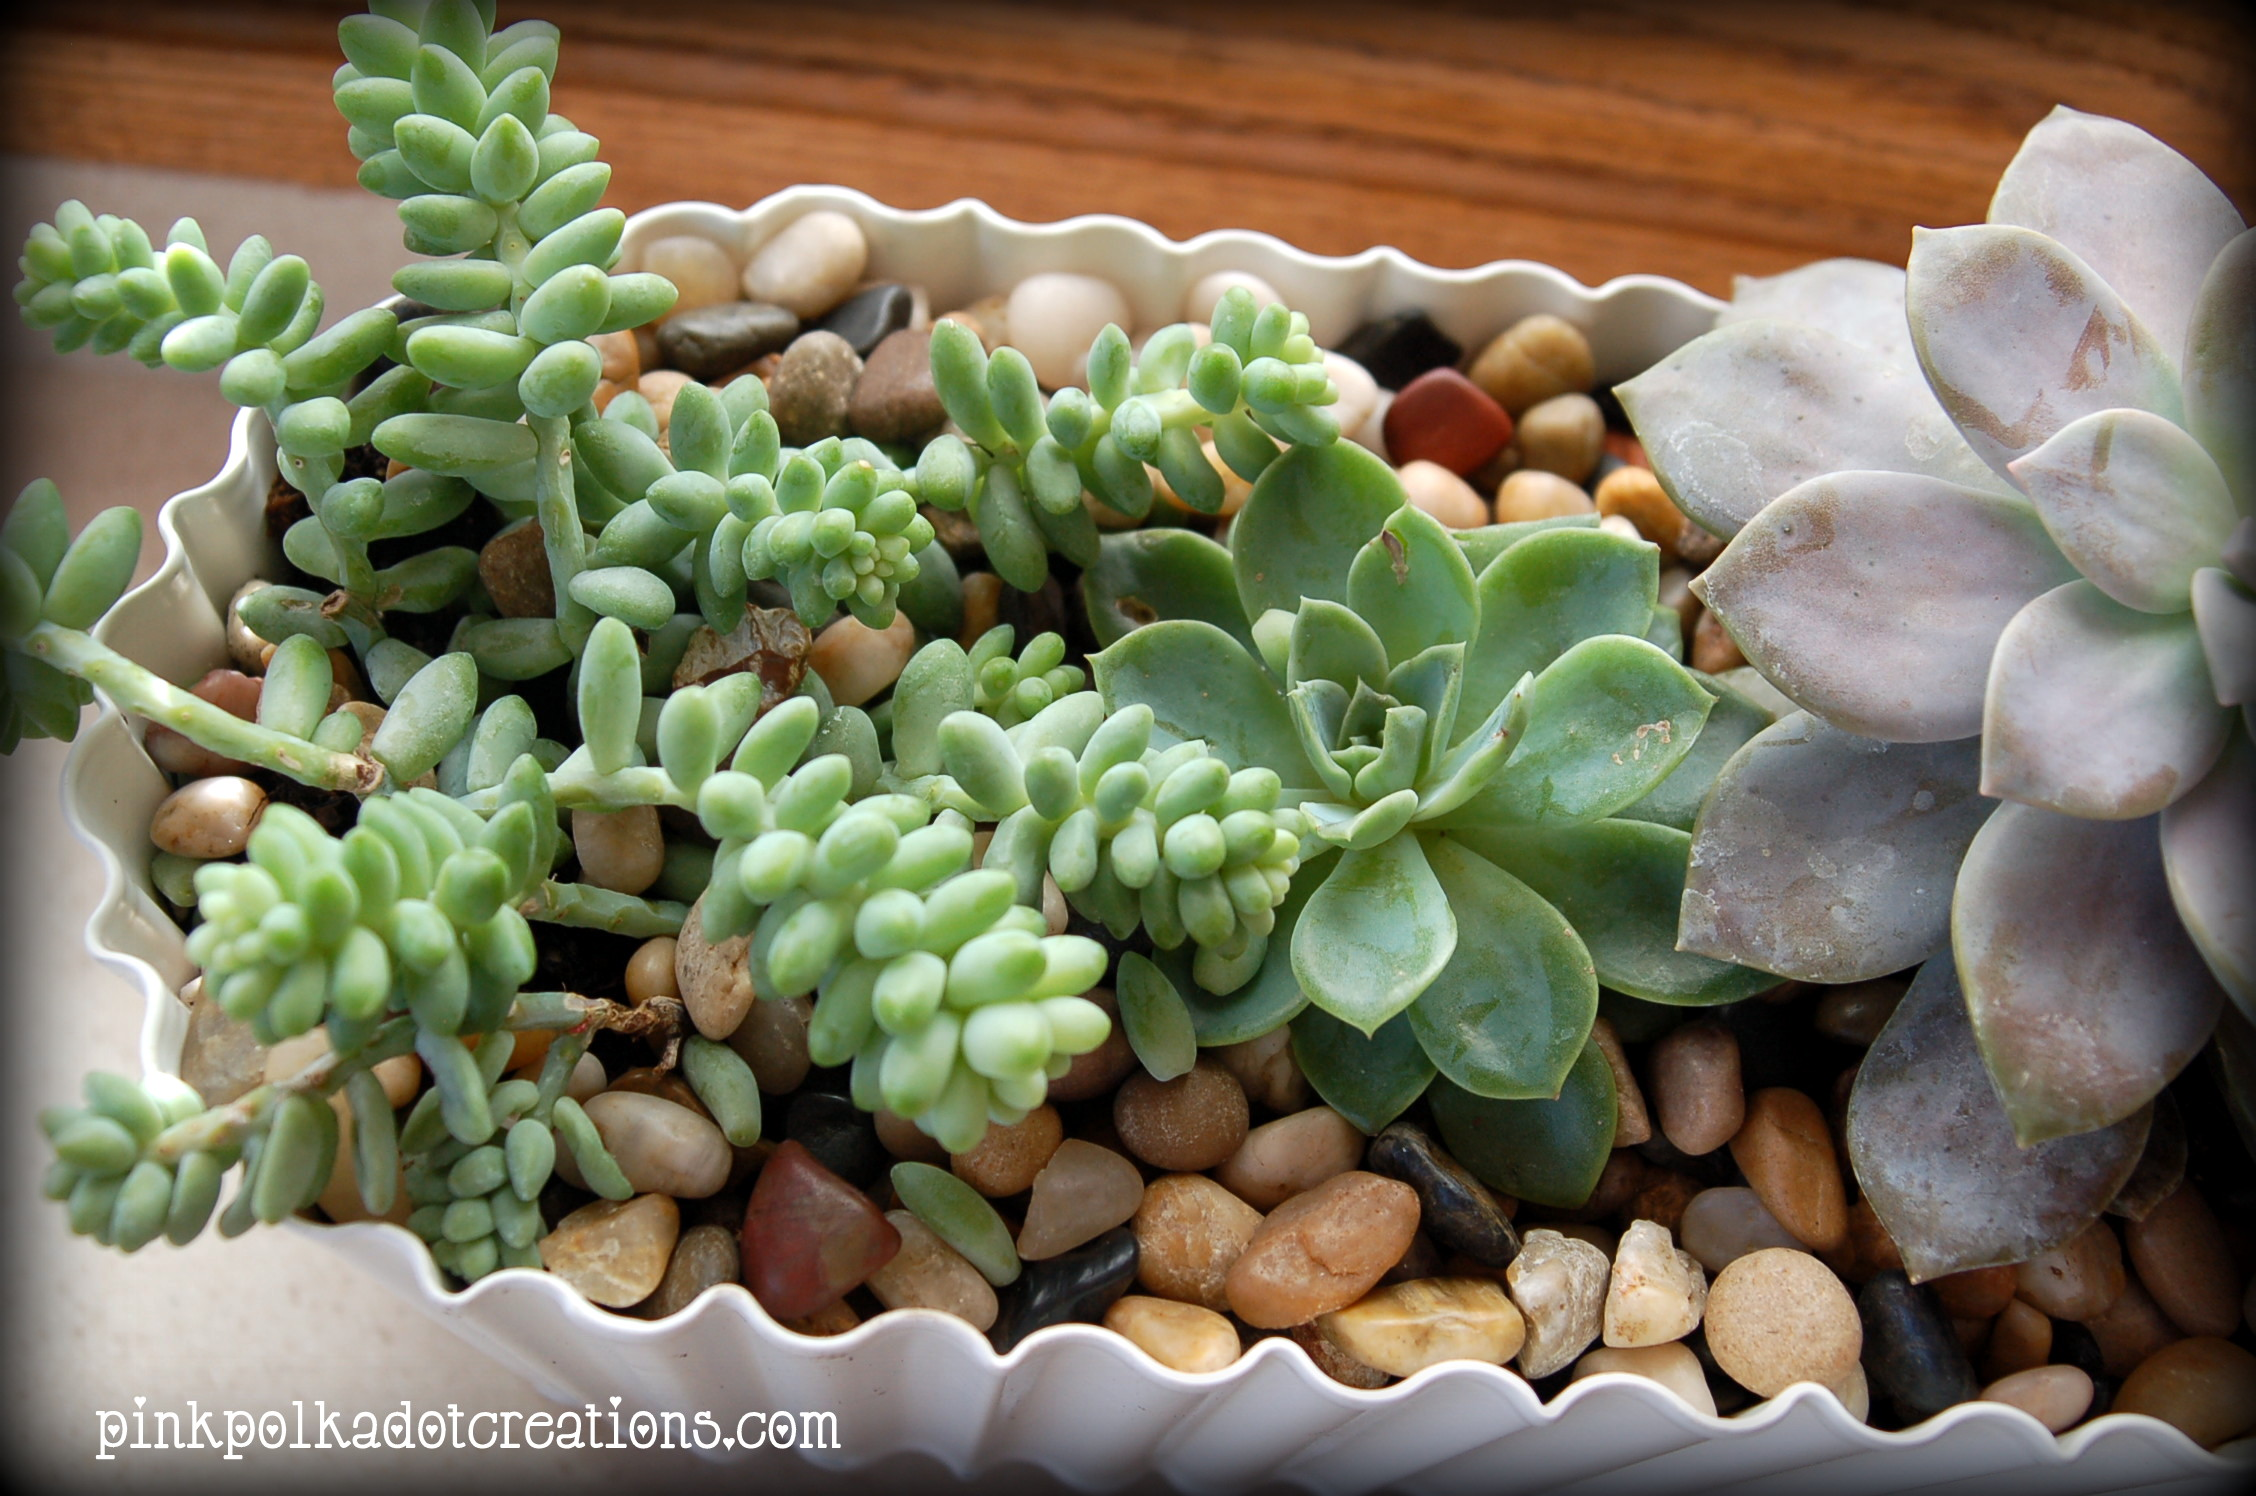 Do You Have Any Succulents At Your House What Are Favorite Ones